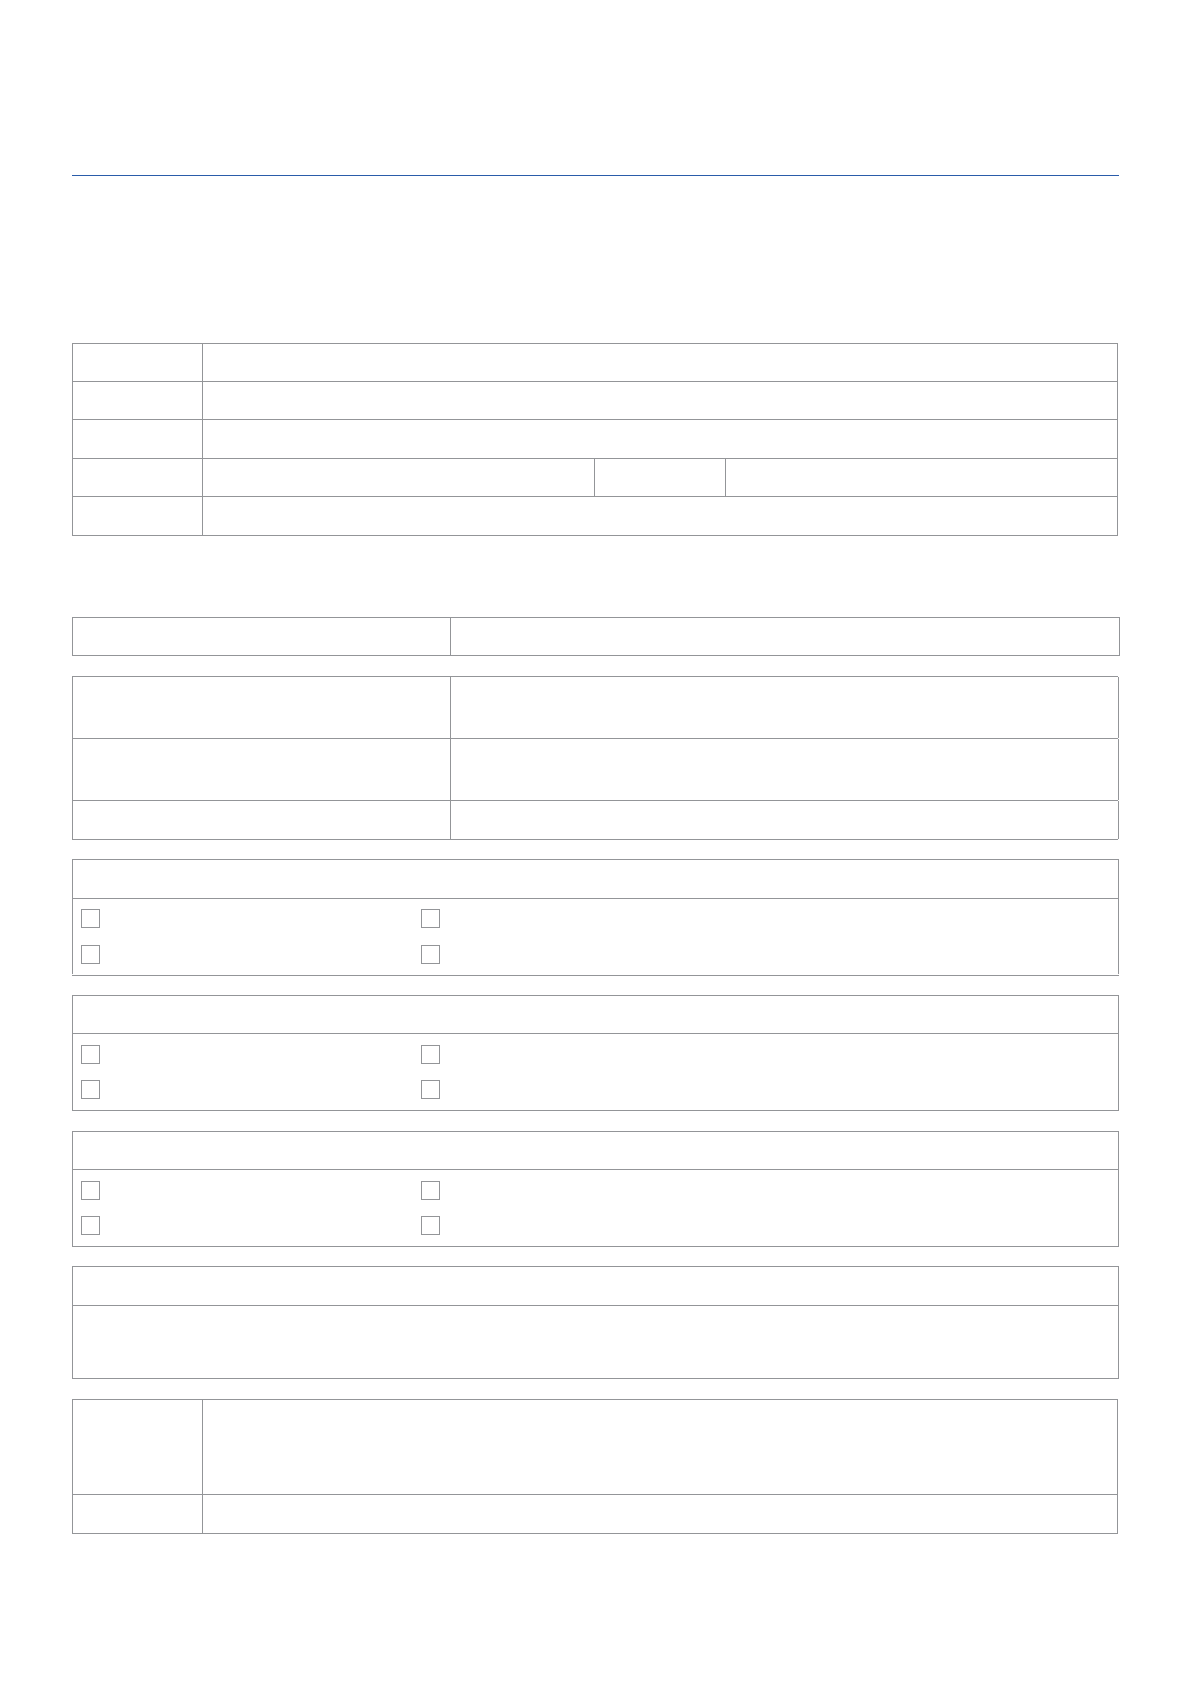 trade reference form template .